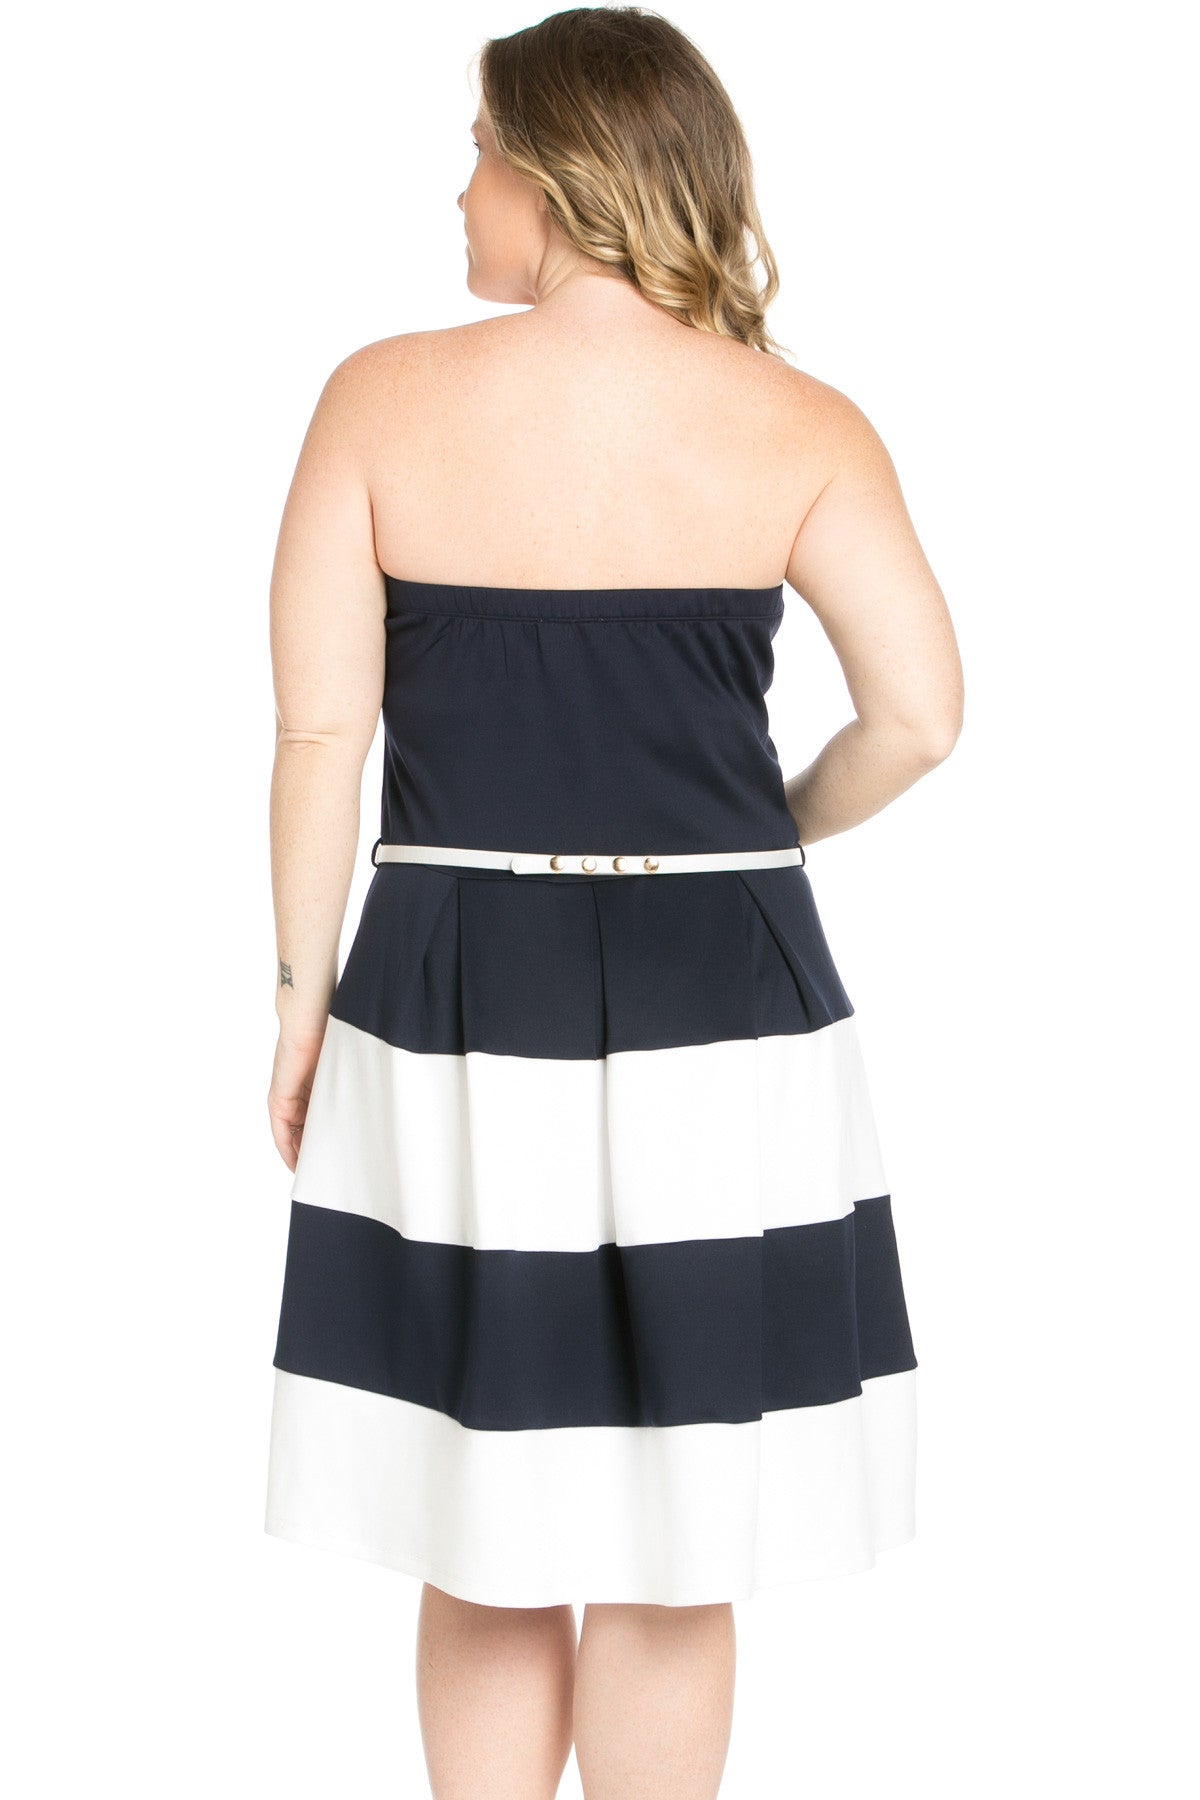 Sweetheart Color Block in Navy Tube Dress with Belt - Dresses - My Yuccie - 4